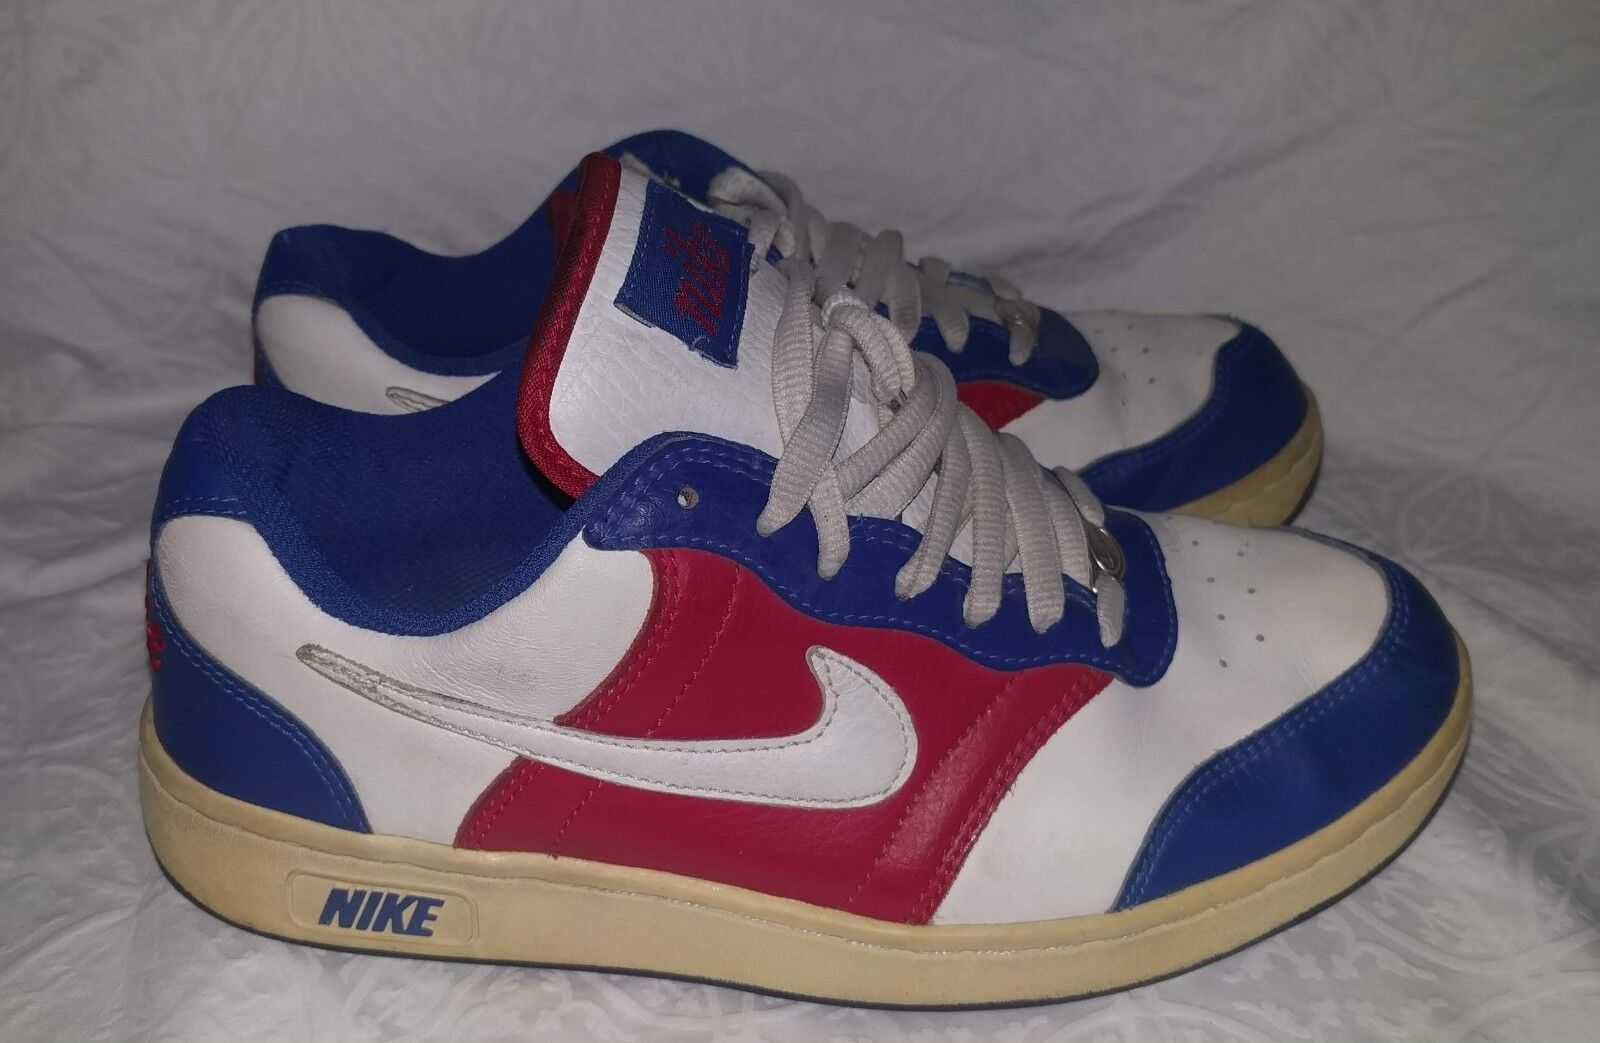 Vintage Nike Shoes 2018 Retro Nike LA CLIPPERS 8.5 Red White & Blue Leather